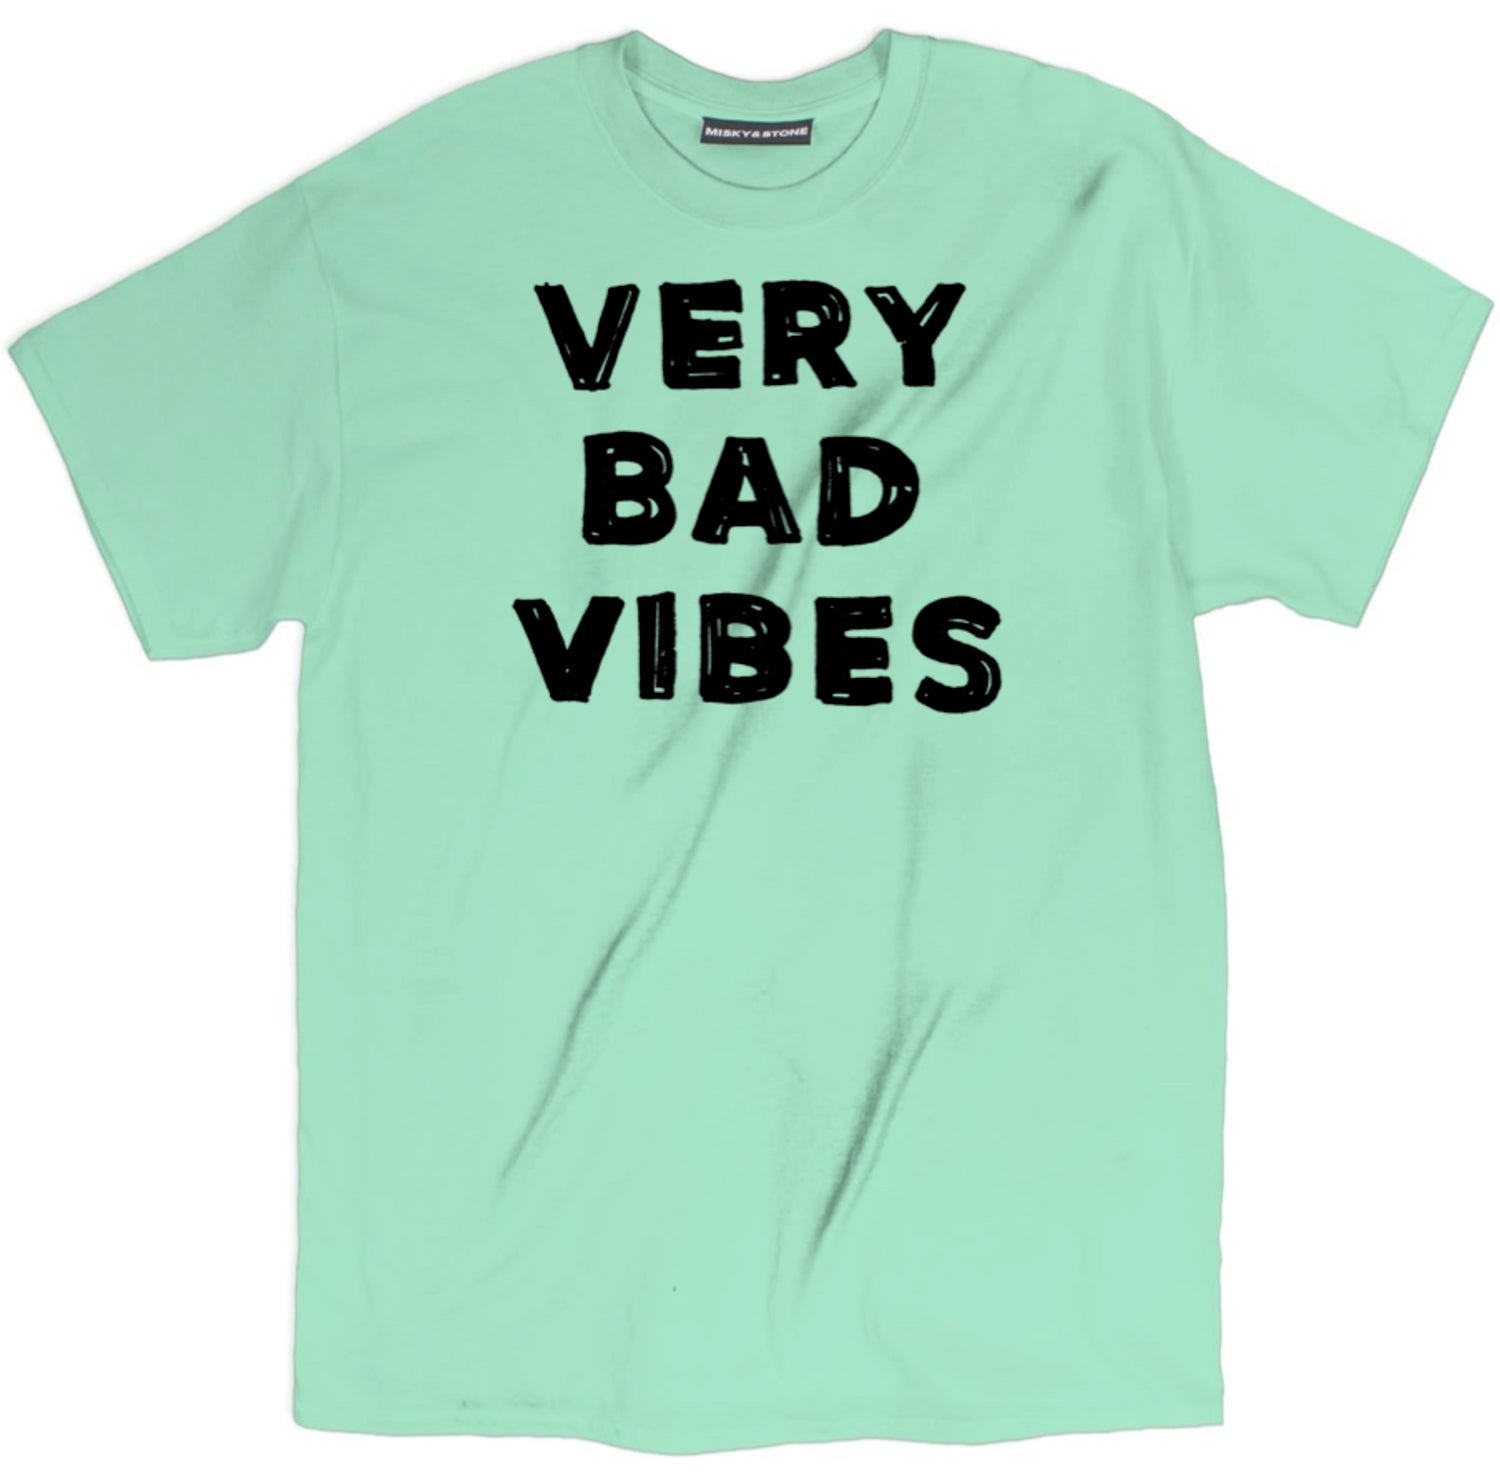 very bad vibes tee, very bad vibes t shirt, up to no good tee, trouble maker tee, trippy shirts, trippy tees, trippy t shirts, trippy clothing, cool trippy shirts, trippy cat shirt, trippy tee shirts, trippy alien shirt, funny tshirt quotes